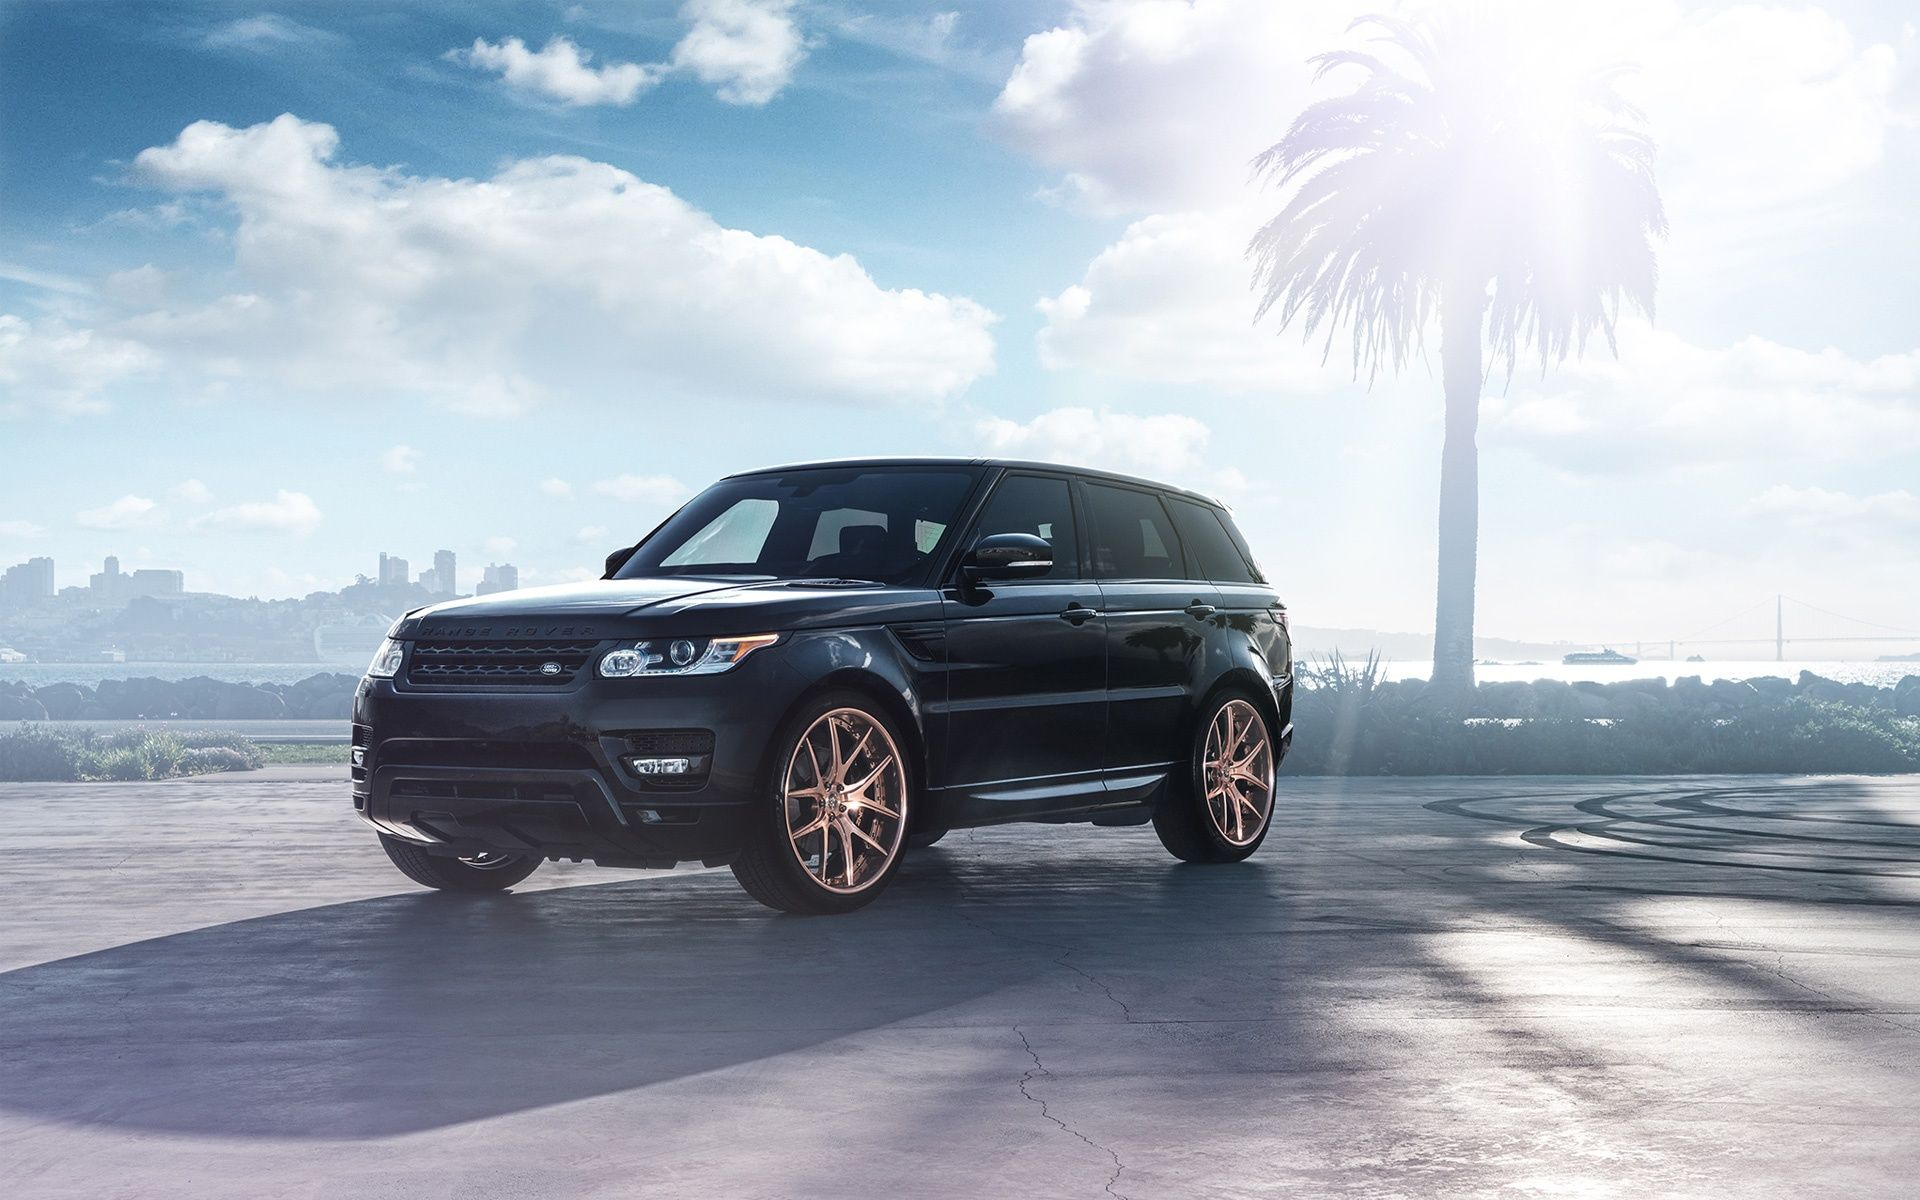 Sport Wallpaper Land Rovers: Land Rover Range Rover Sport SVR Wallpaper HD Car